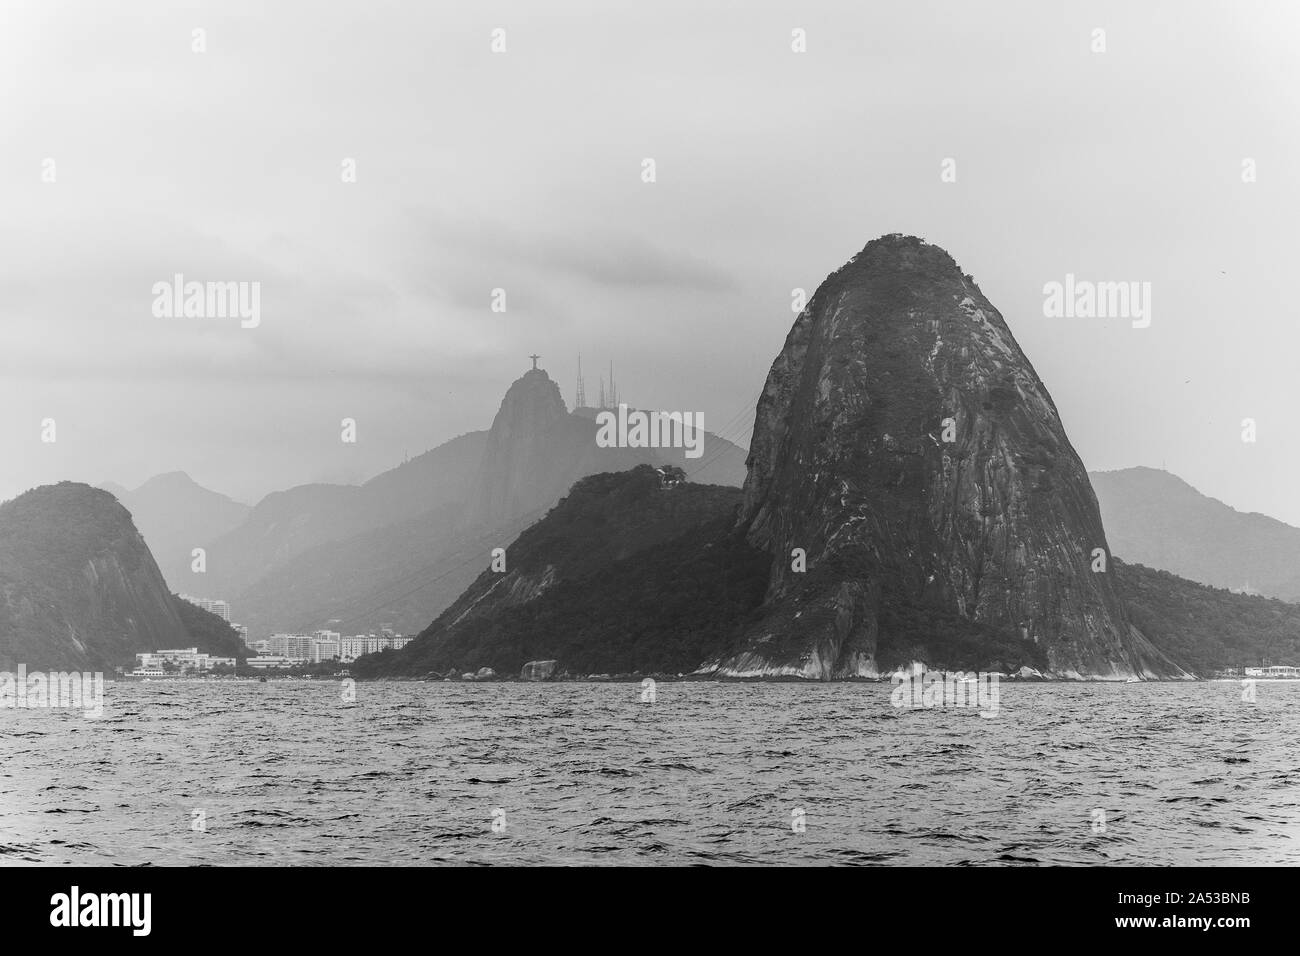 Beautiful view from the ocean to mountains and landscape in Rio de Janeiro, RJ Stock Photo